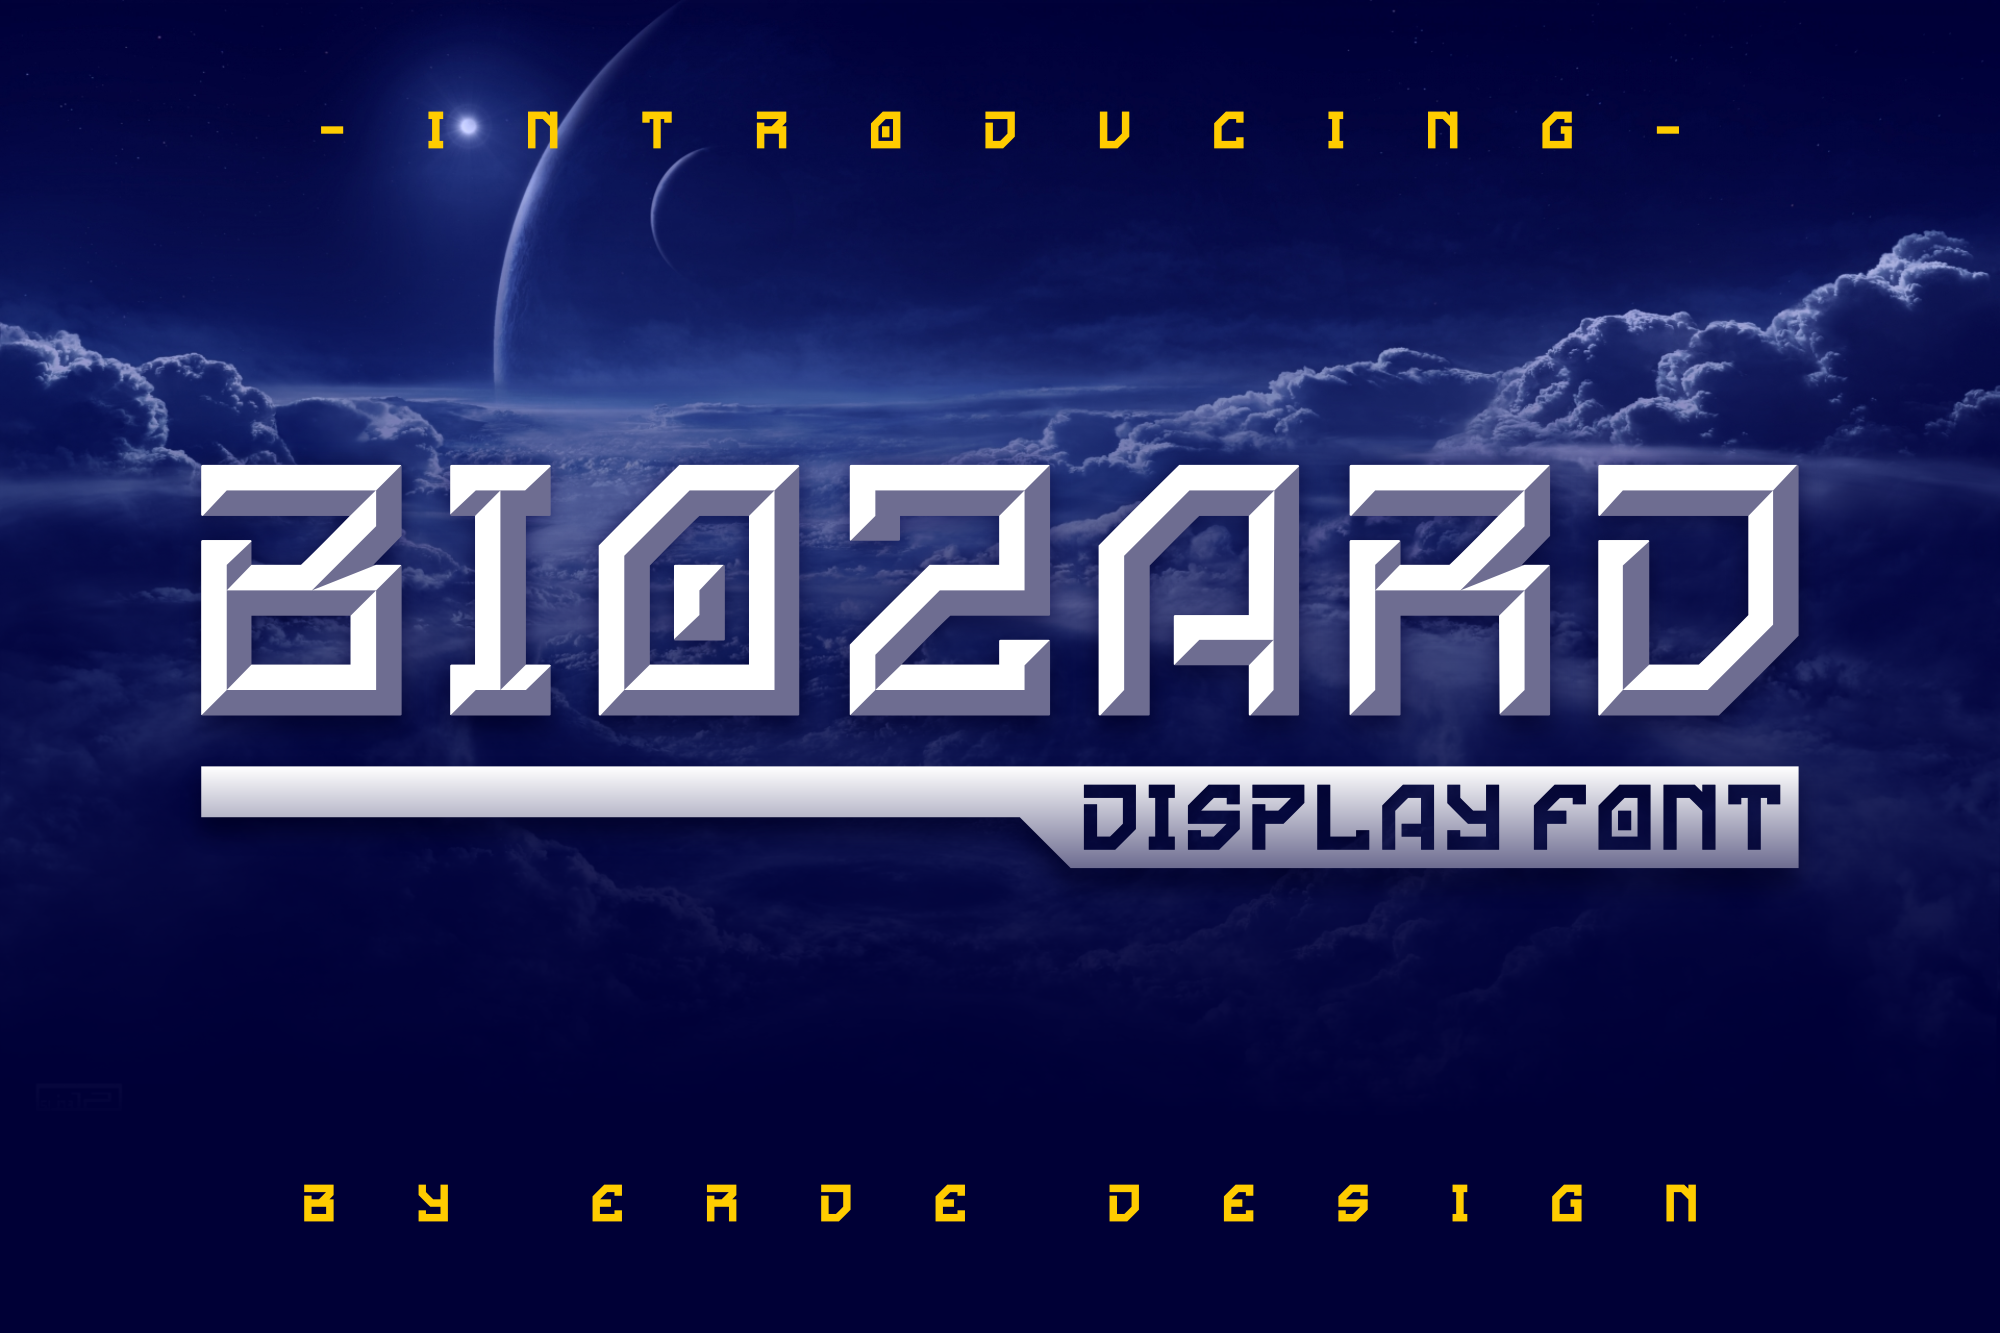 Biozard - Display Font example image 1